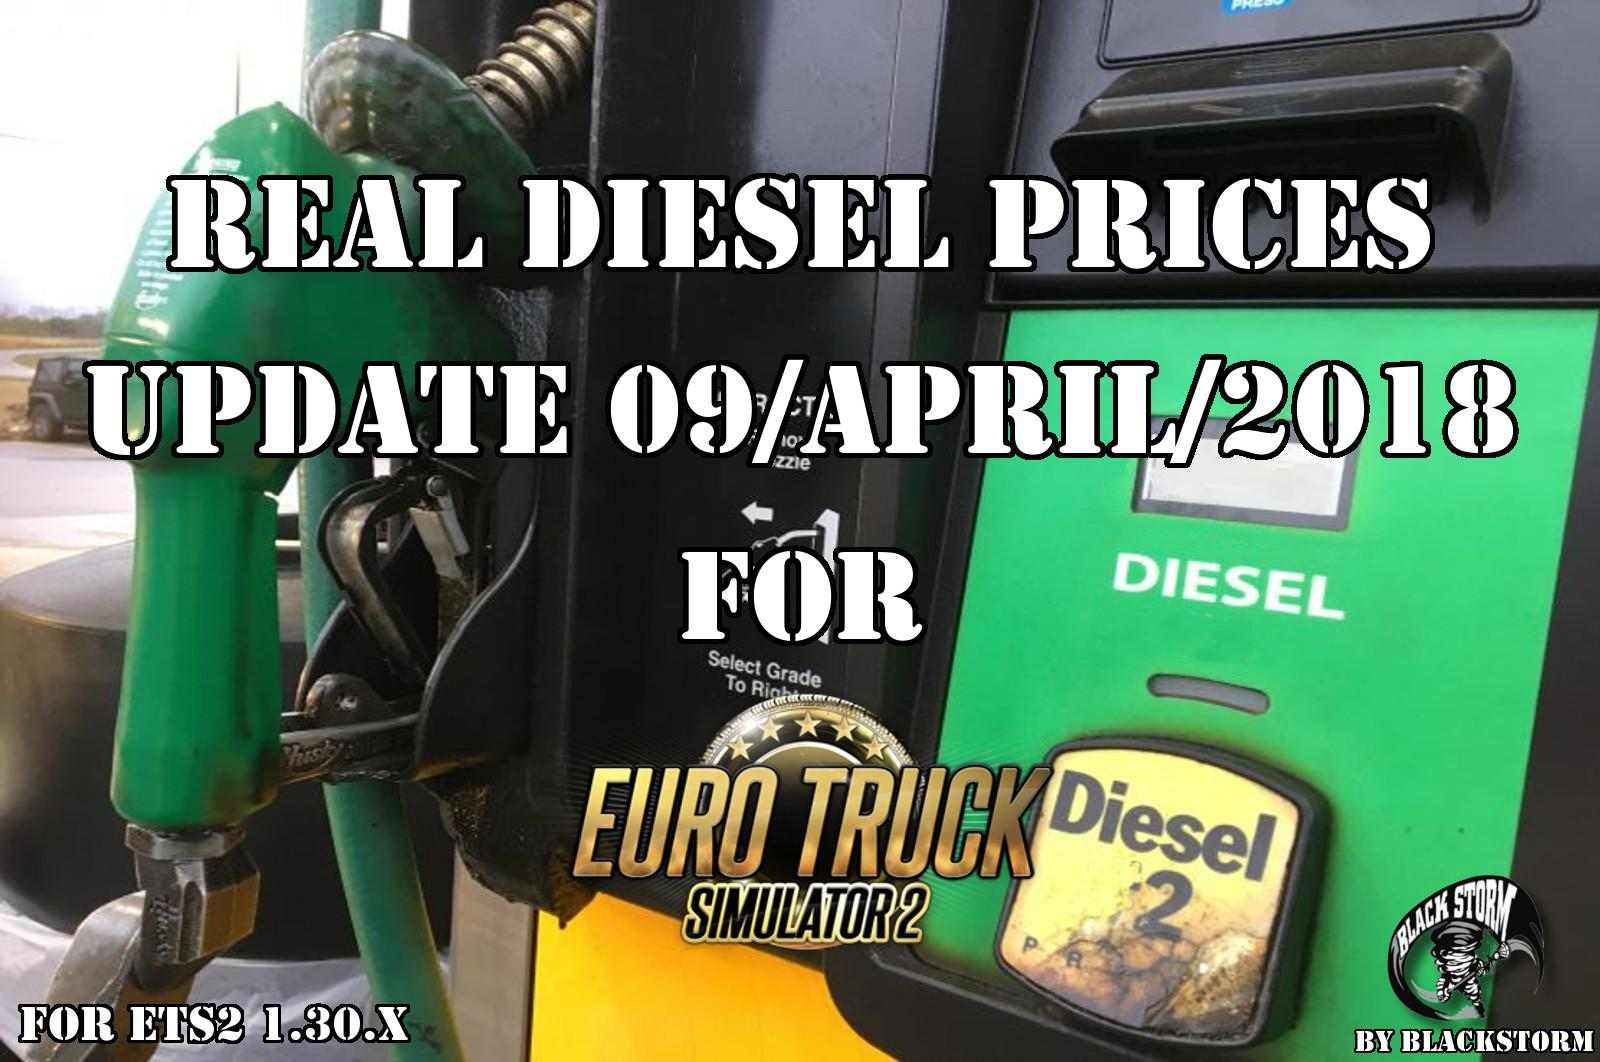 Real Diesel Prices for Euro Truck Simulator 2 Map (Update 09/04/2018)